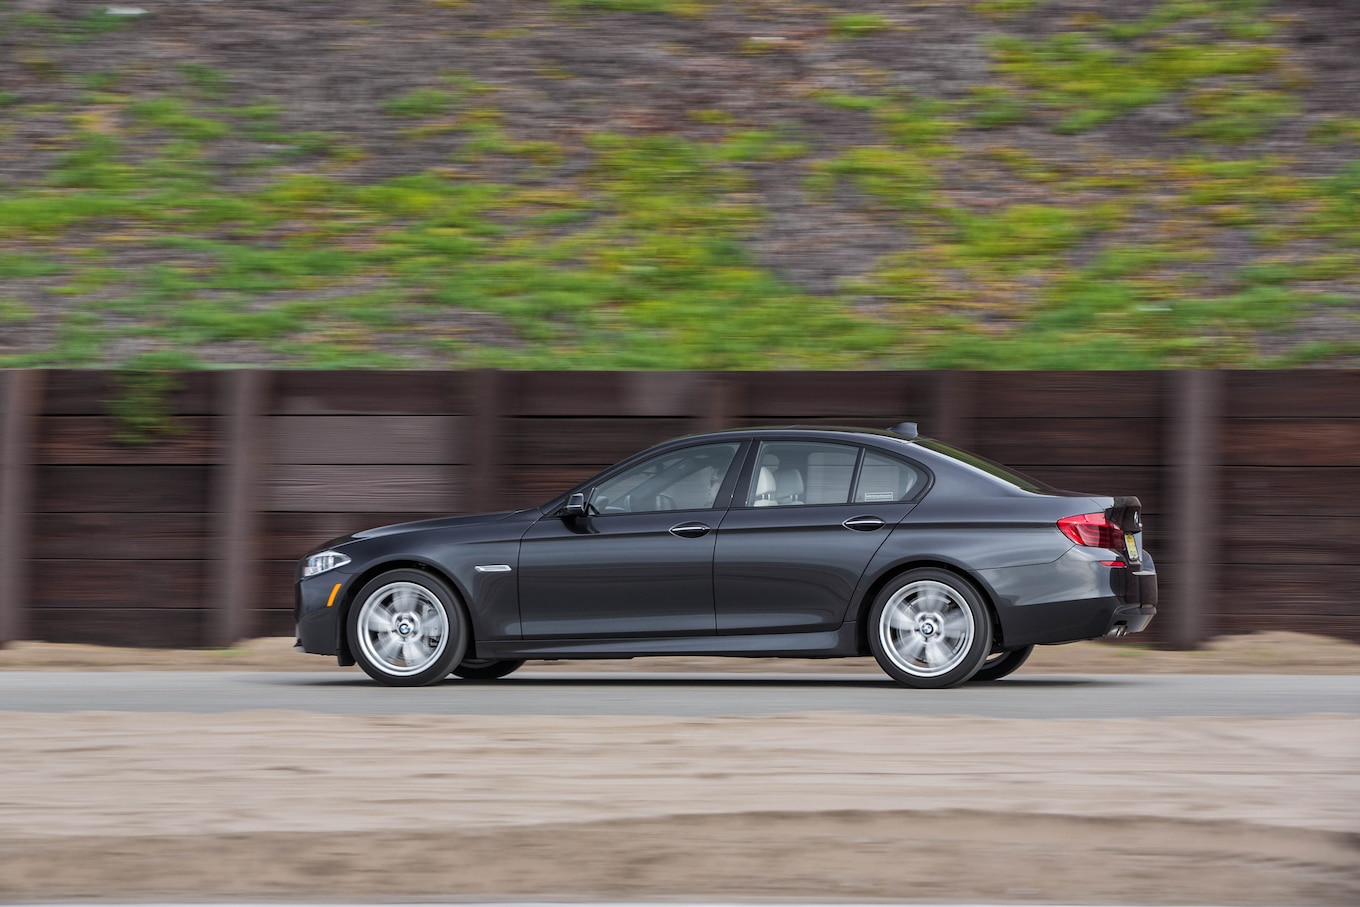 hight resolution of 2014 bmw 535d 58 182